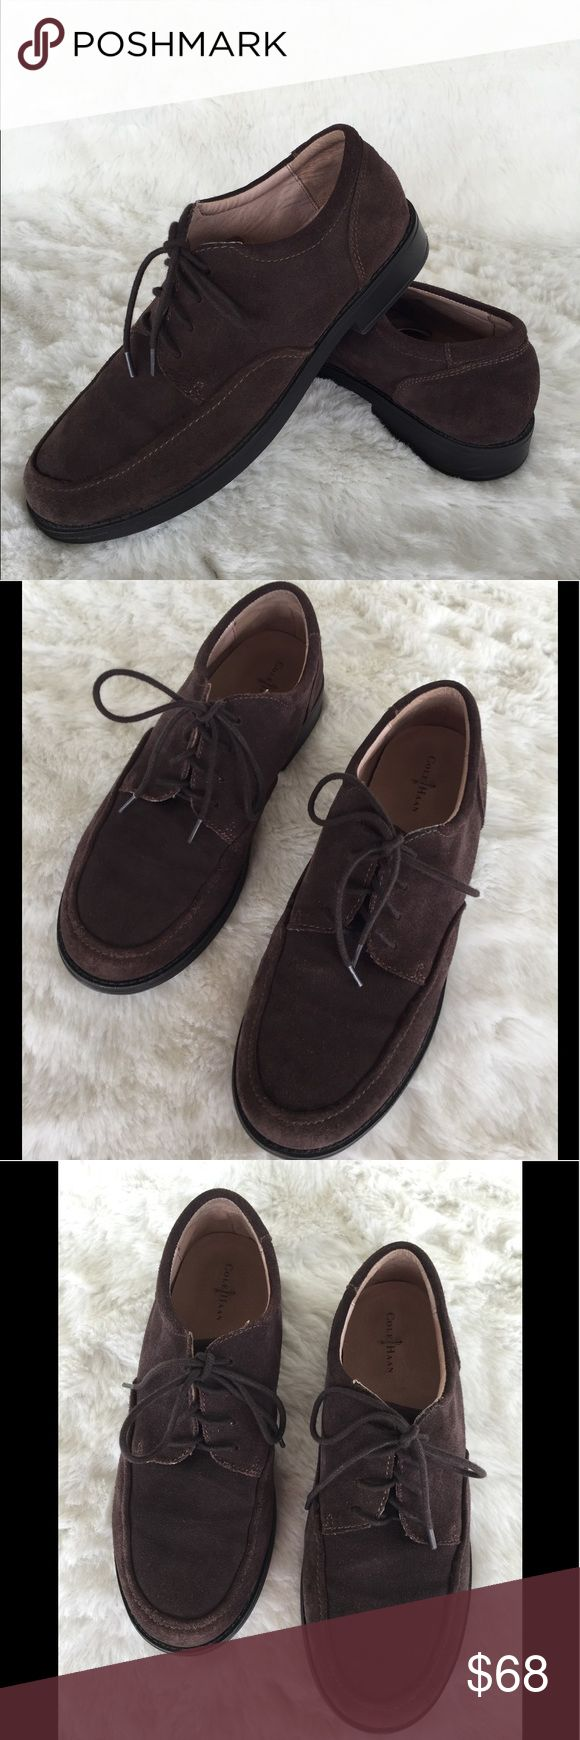 ❤️Men's Cole Haan one hour sale ❤️ Men's Cole Haan Suede Leather Oxfords  Size 7 Air ace lace Leather upper  Slightly worn Cole Haan Shoes